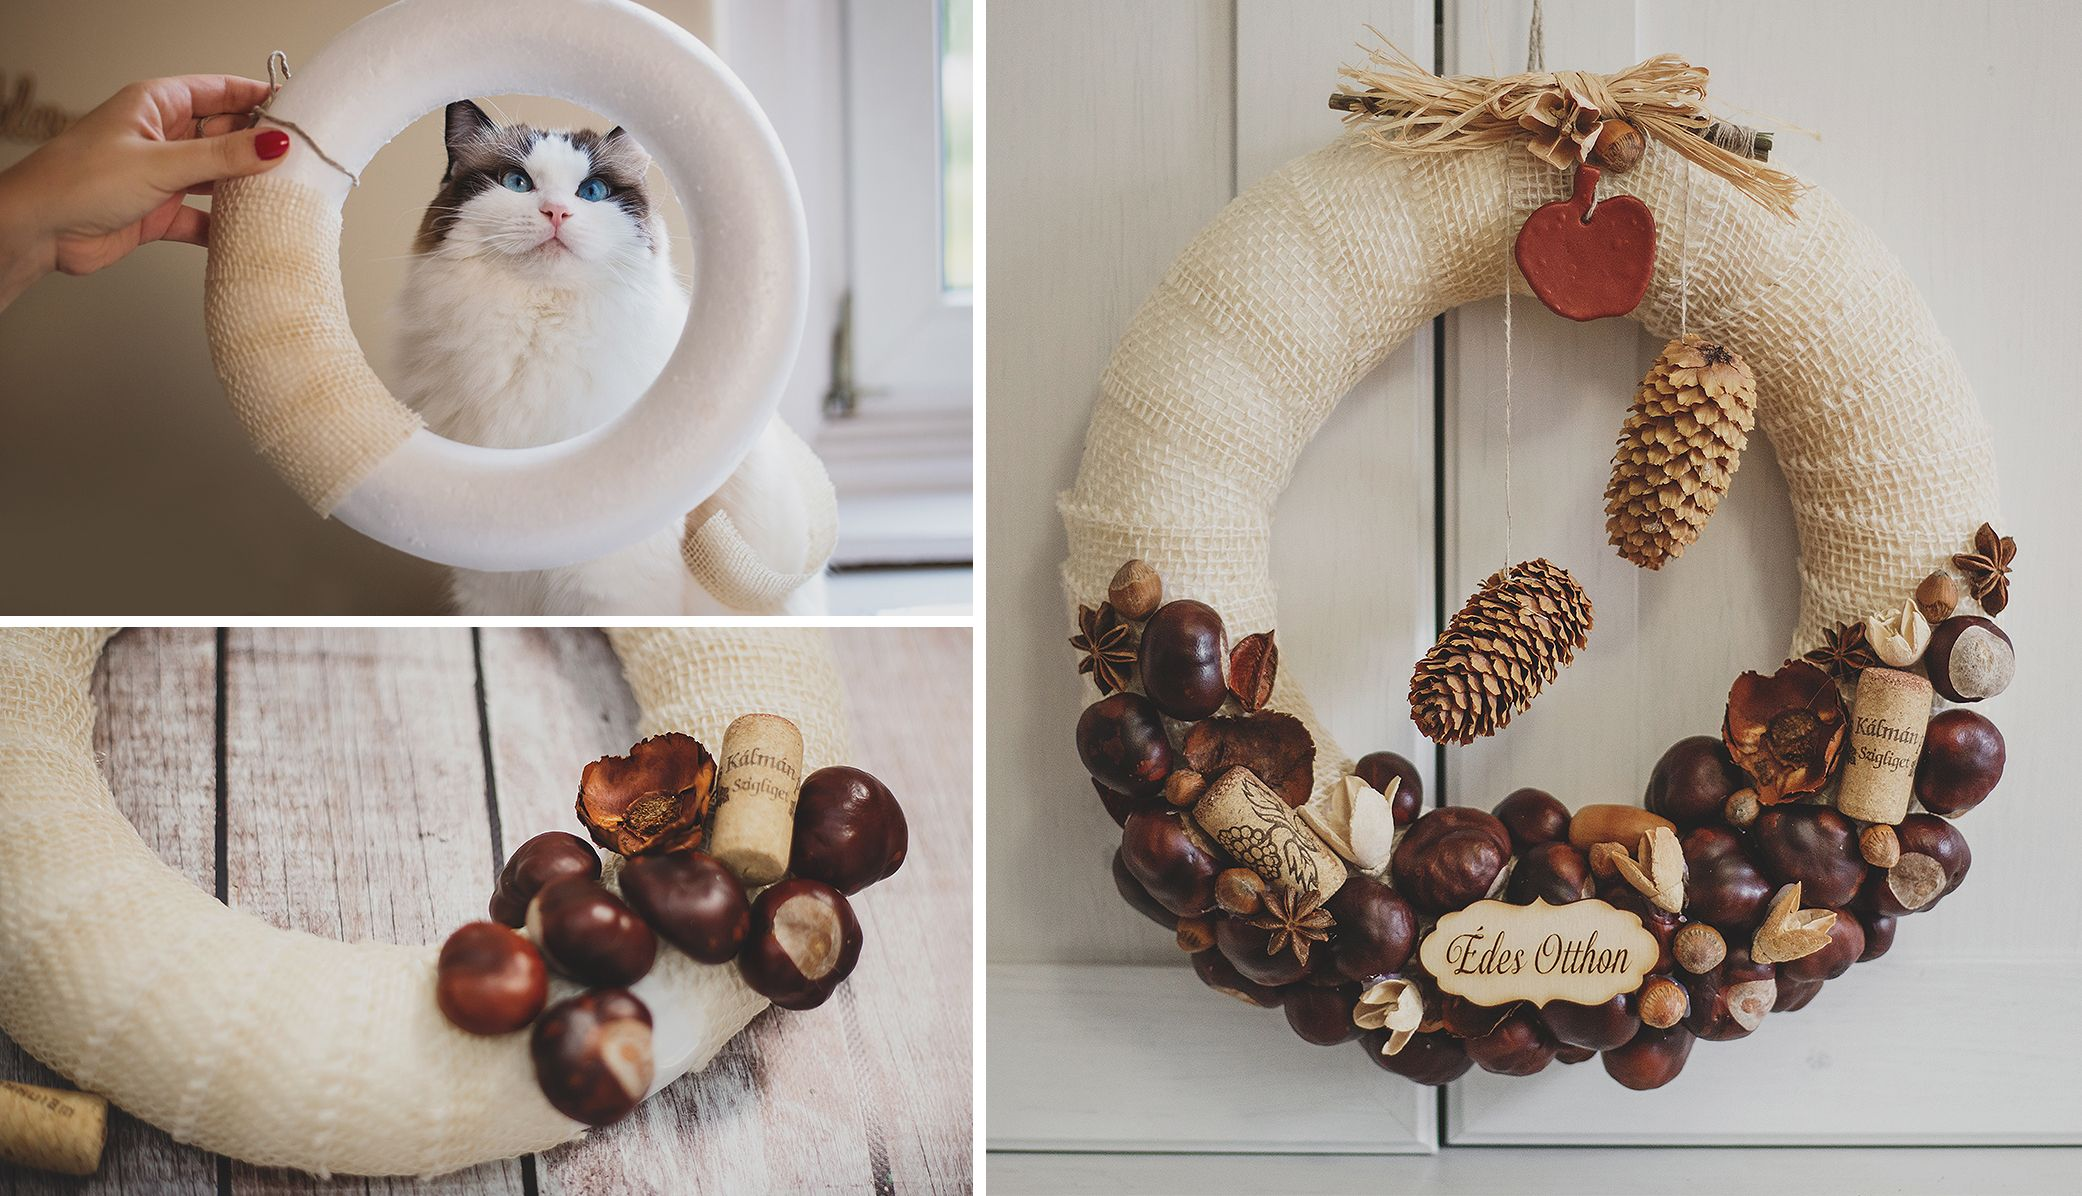 Make Diy Chestnut Crafts For Decorating Home In Fall Autumn Acorn Crafts Crafts Christmas Crafts